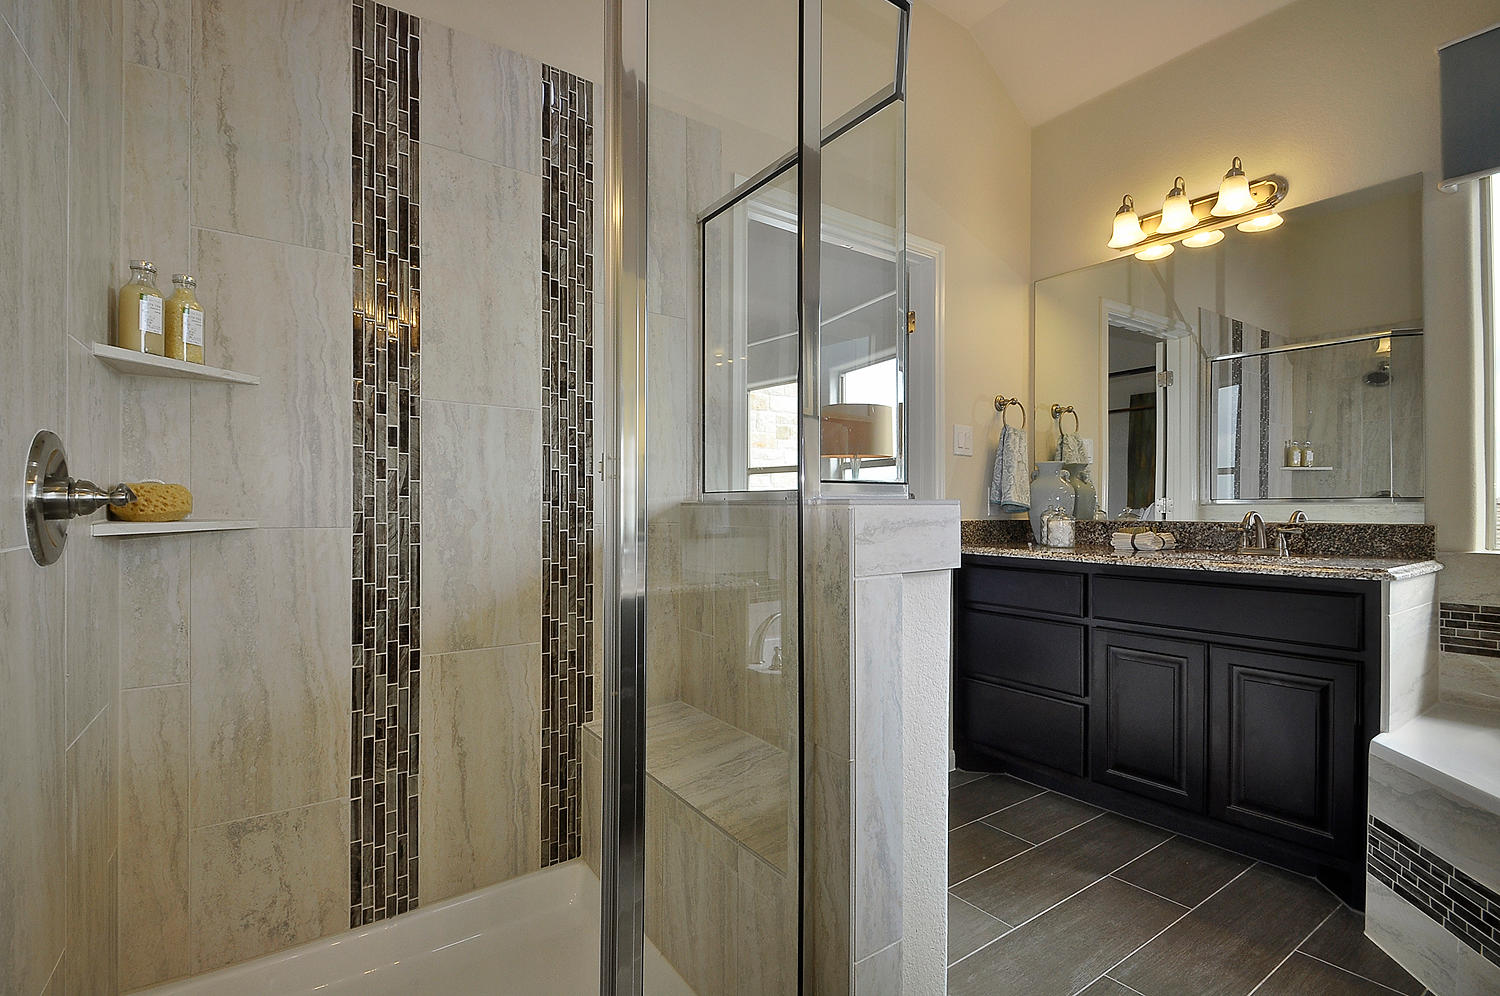 Burrows Cabinets master bath vanity in Espresso with glass shower